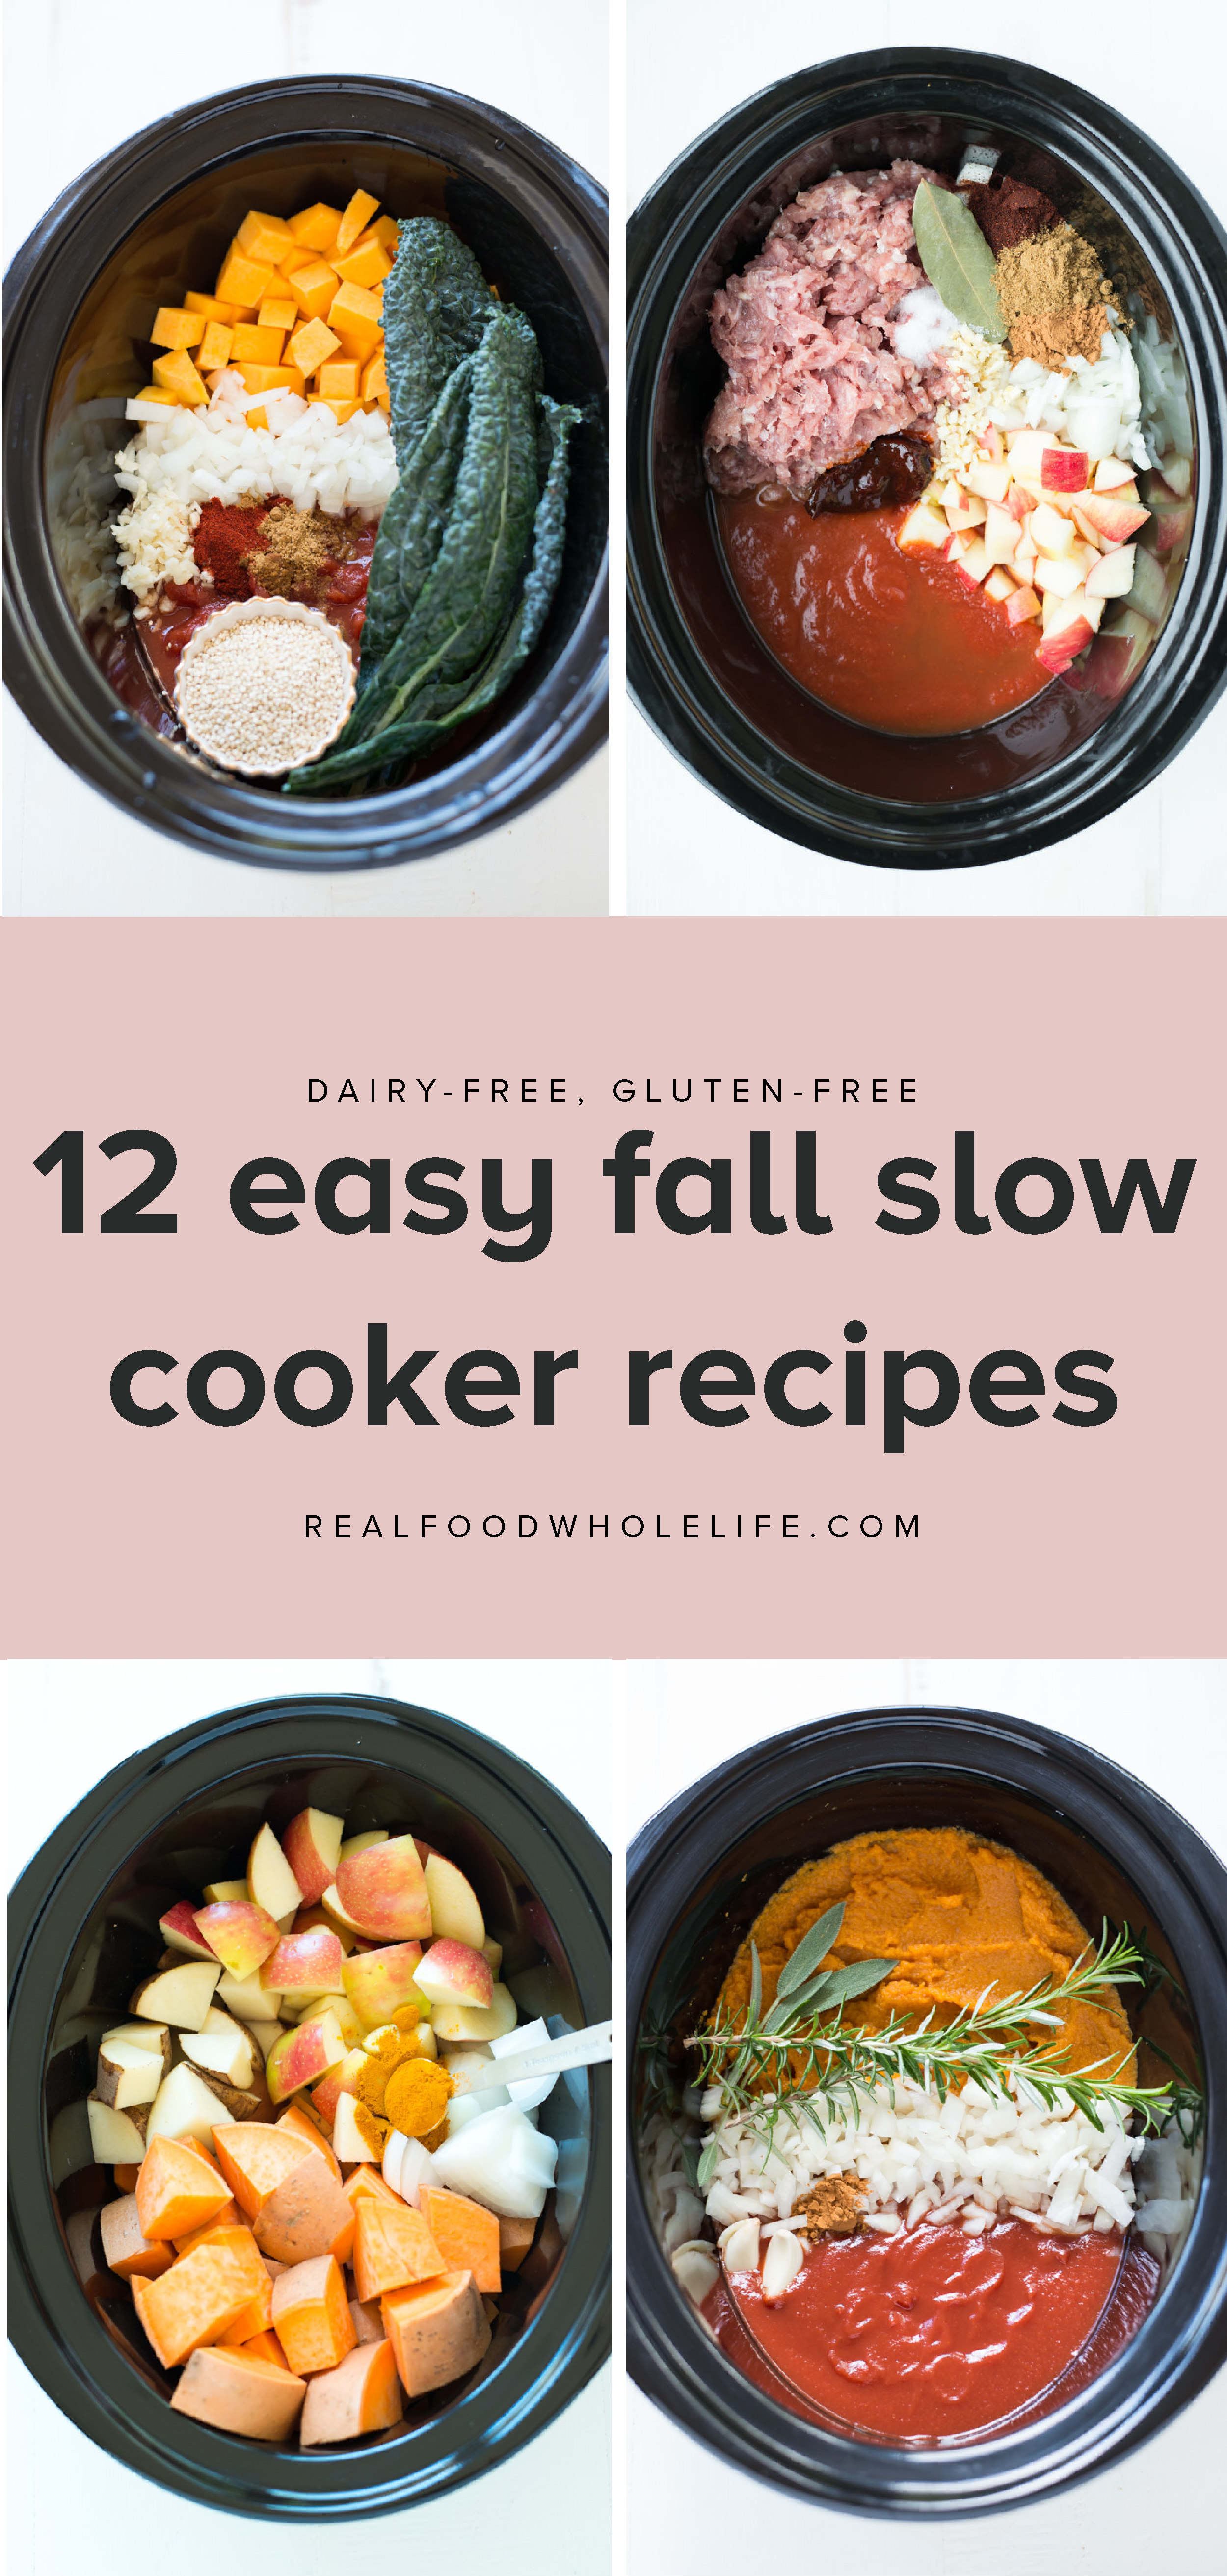 12 easy, healthy fall recipes to throw in your slow cooker from Real Food Whole Life. #realfoodwholeliferecipes #fallrecipes #healthyfallrecipes #dairyfreerecipes #glutenfreerecipes #crockpotrecipeideas #fallcrockpot #fallslowcooker #slowcookerrecipeideas